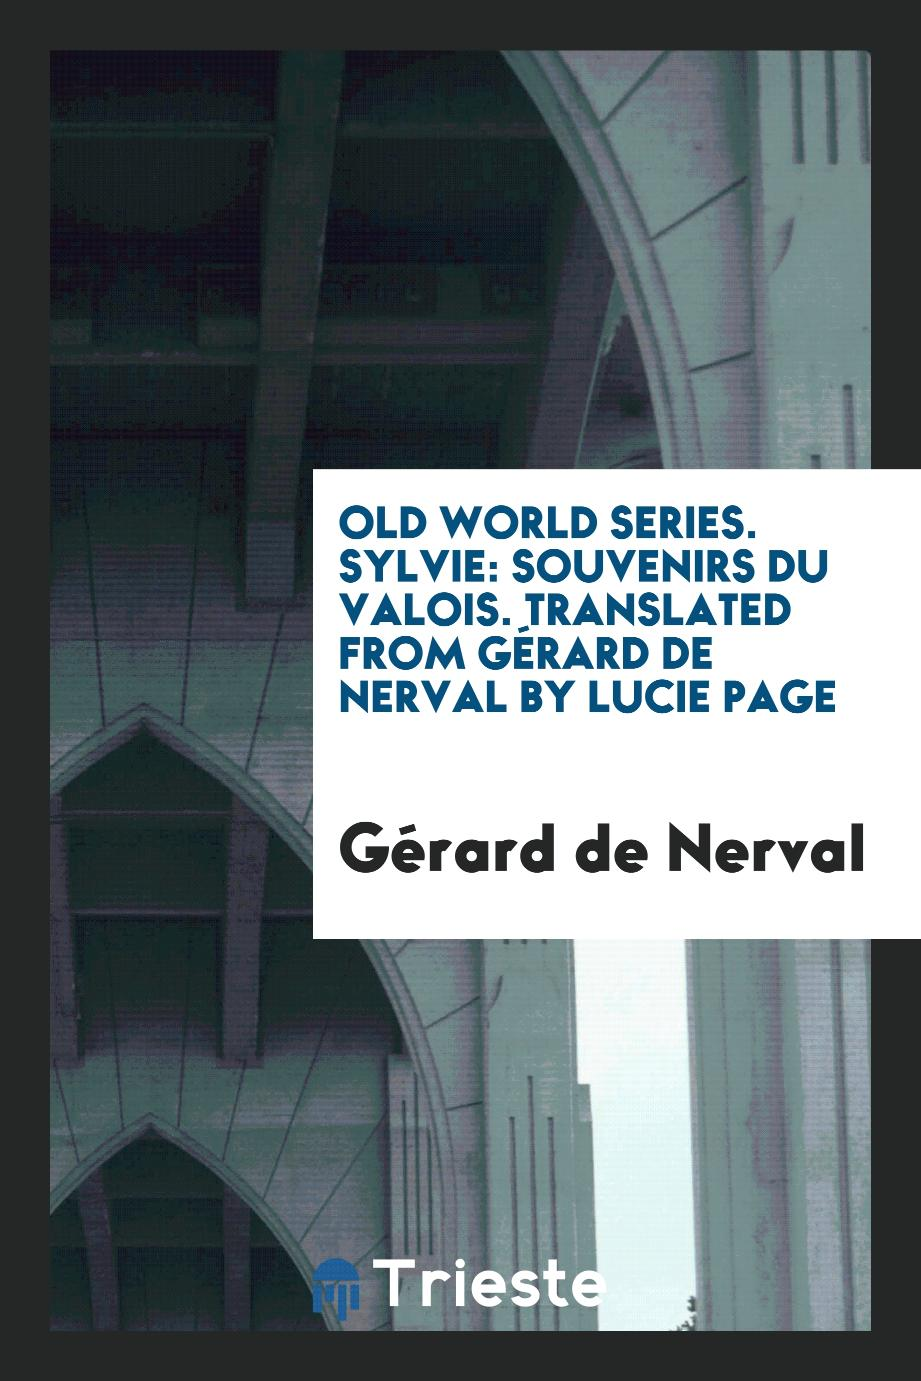 Old World Series. Sylvie: Souvenirs Du Valois. Translated from Gérard de Nerval by Lucie Page